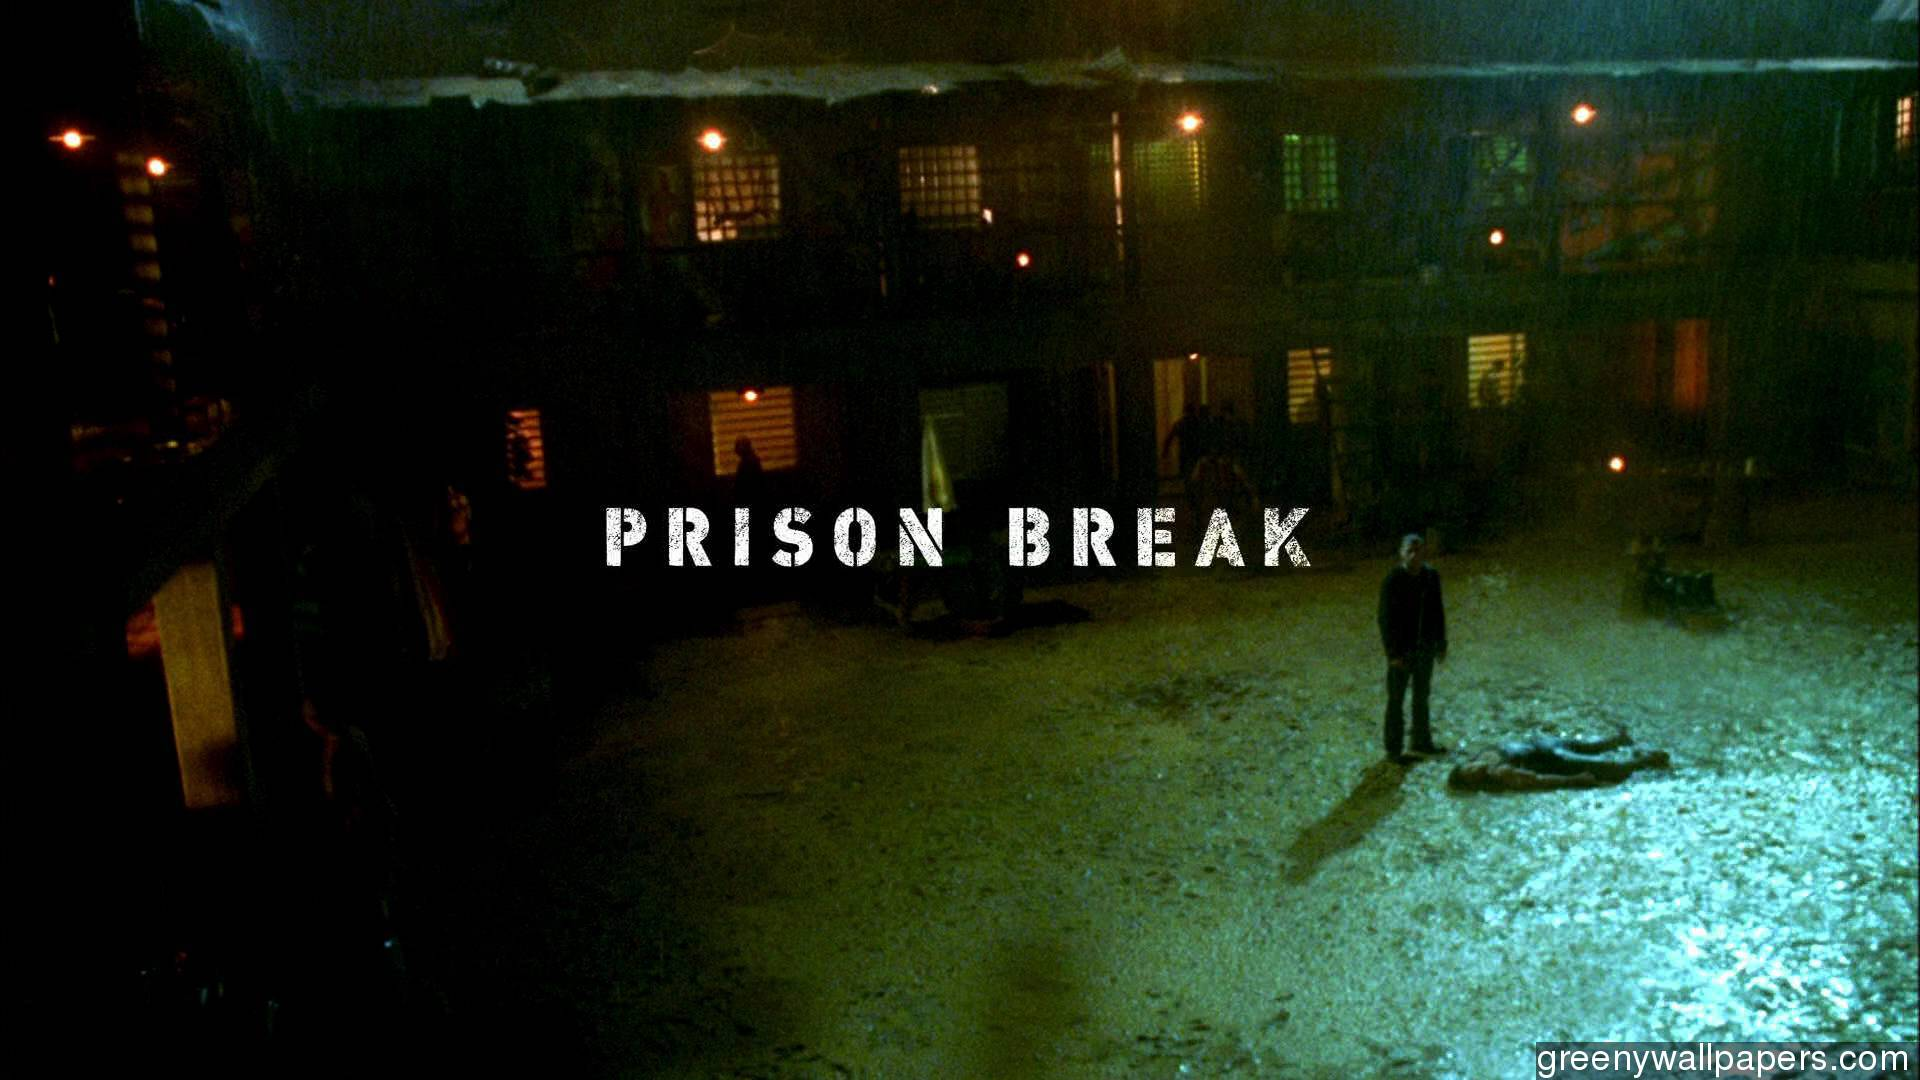 Prison Break Desktop Wallpaper